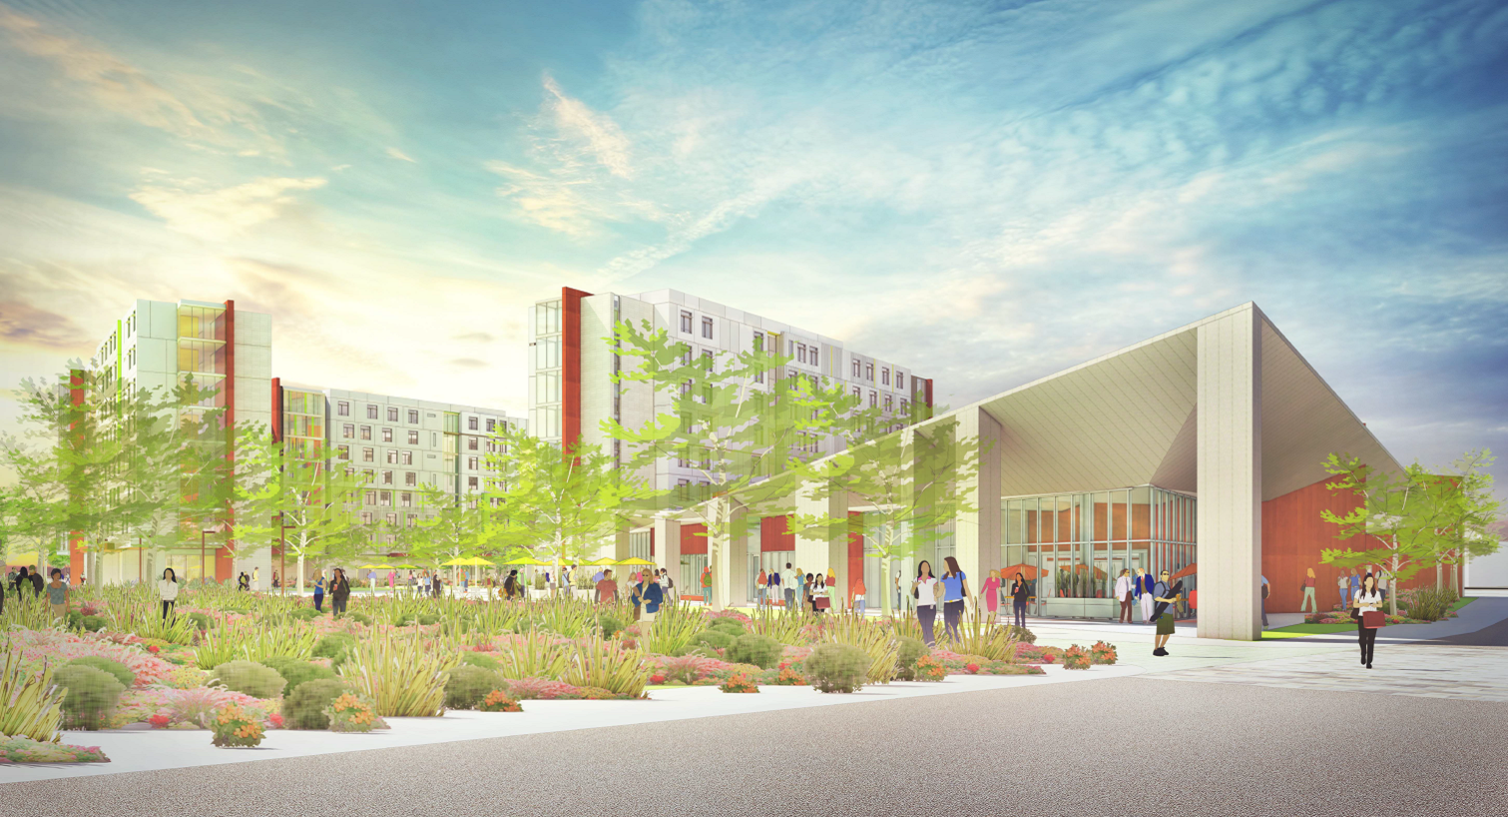 Cal Poly Pomona is preparing to break ground on a new student housing project.